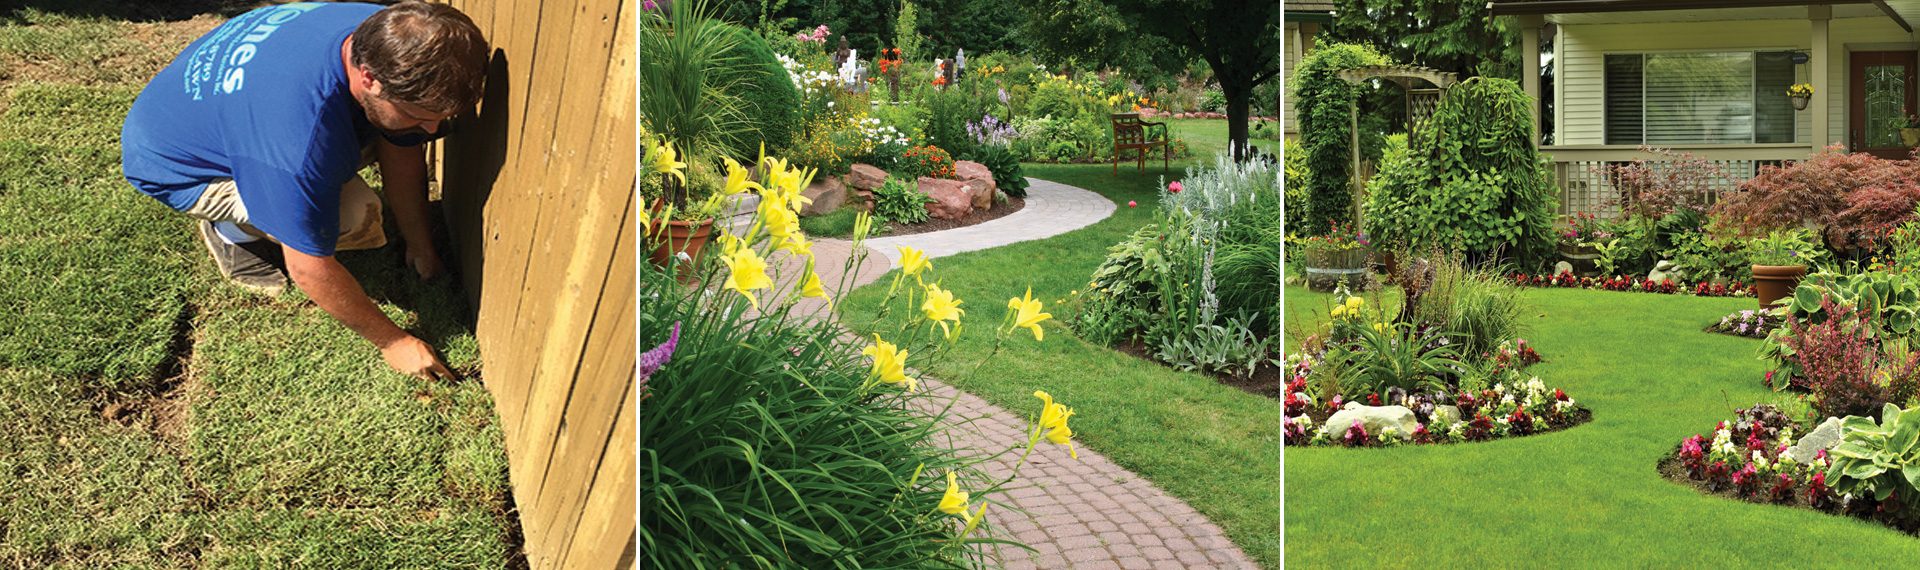 Jones Landscaping & Lawn Services INC Pine Bluff AR